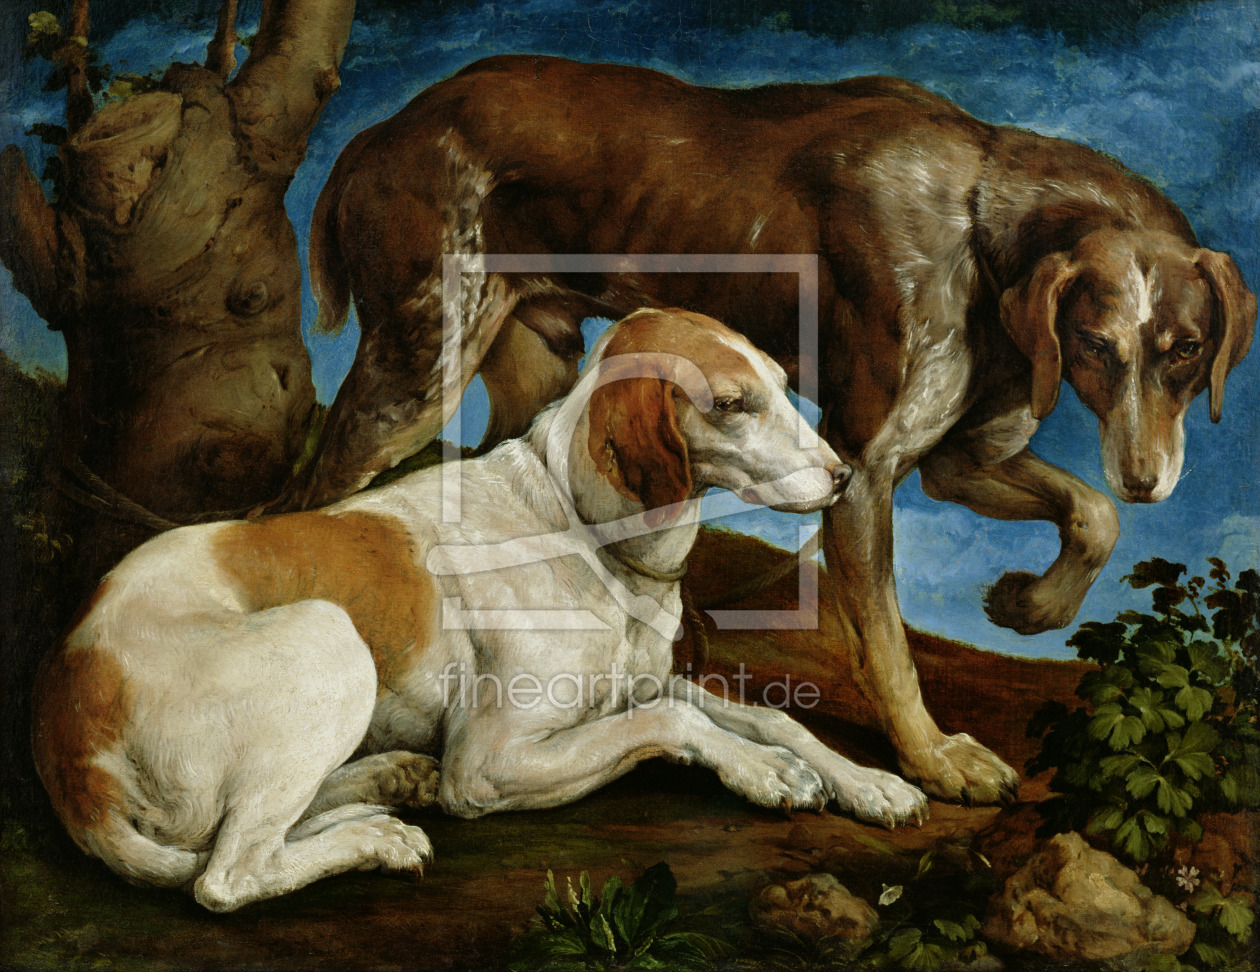 Bild-Nr.: 31002557 Two Hunting Dogs Tied to a Tree Stump, c.1548-50 erstellt von Bassano, Jacopo (Jacopo da Ponte)